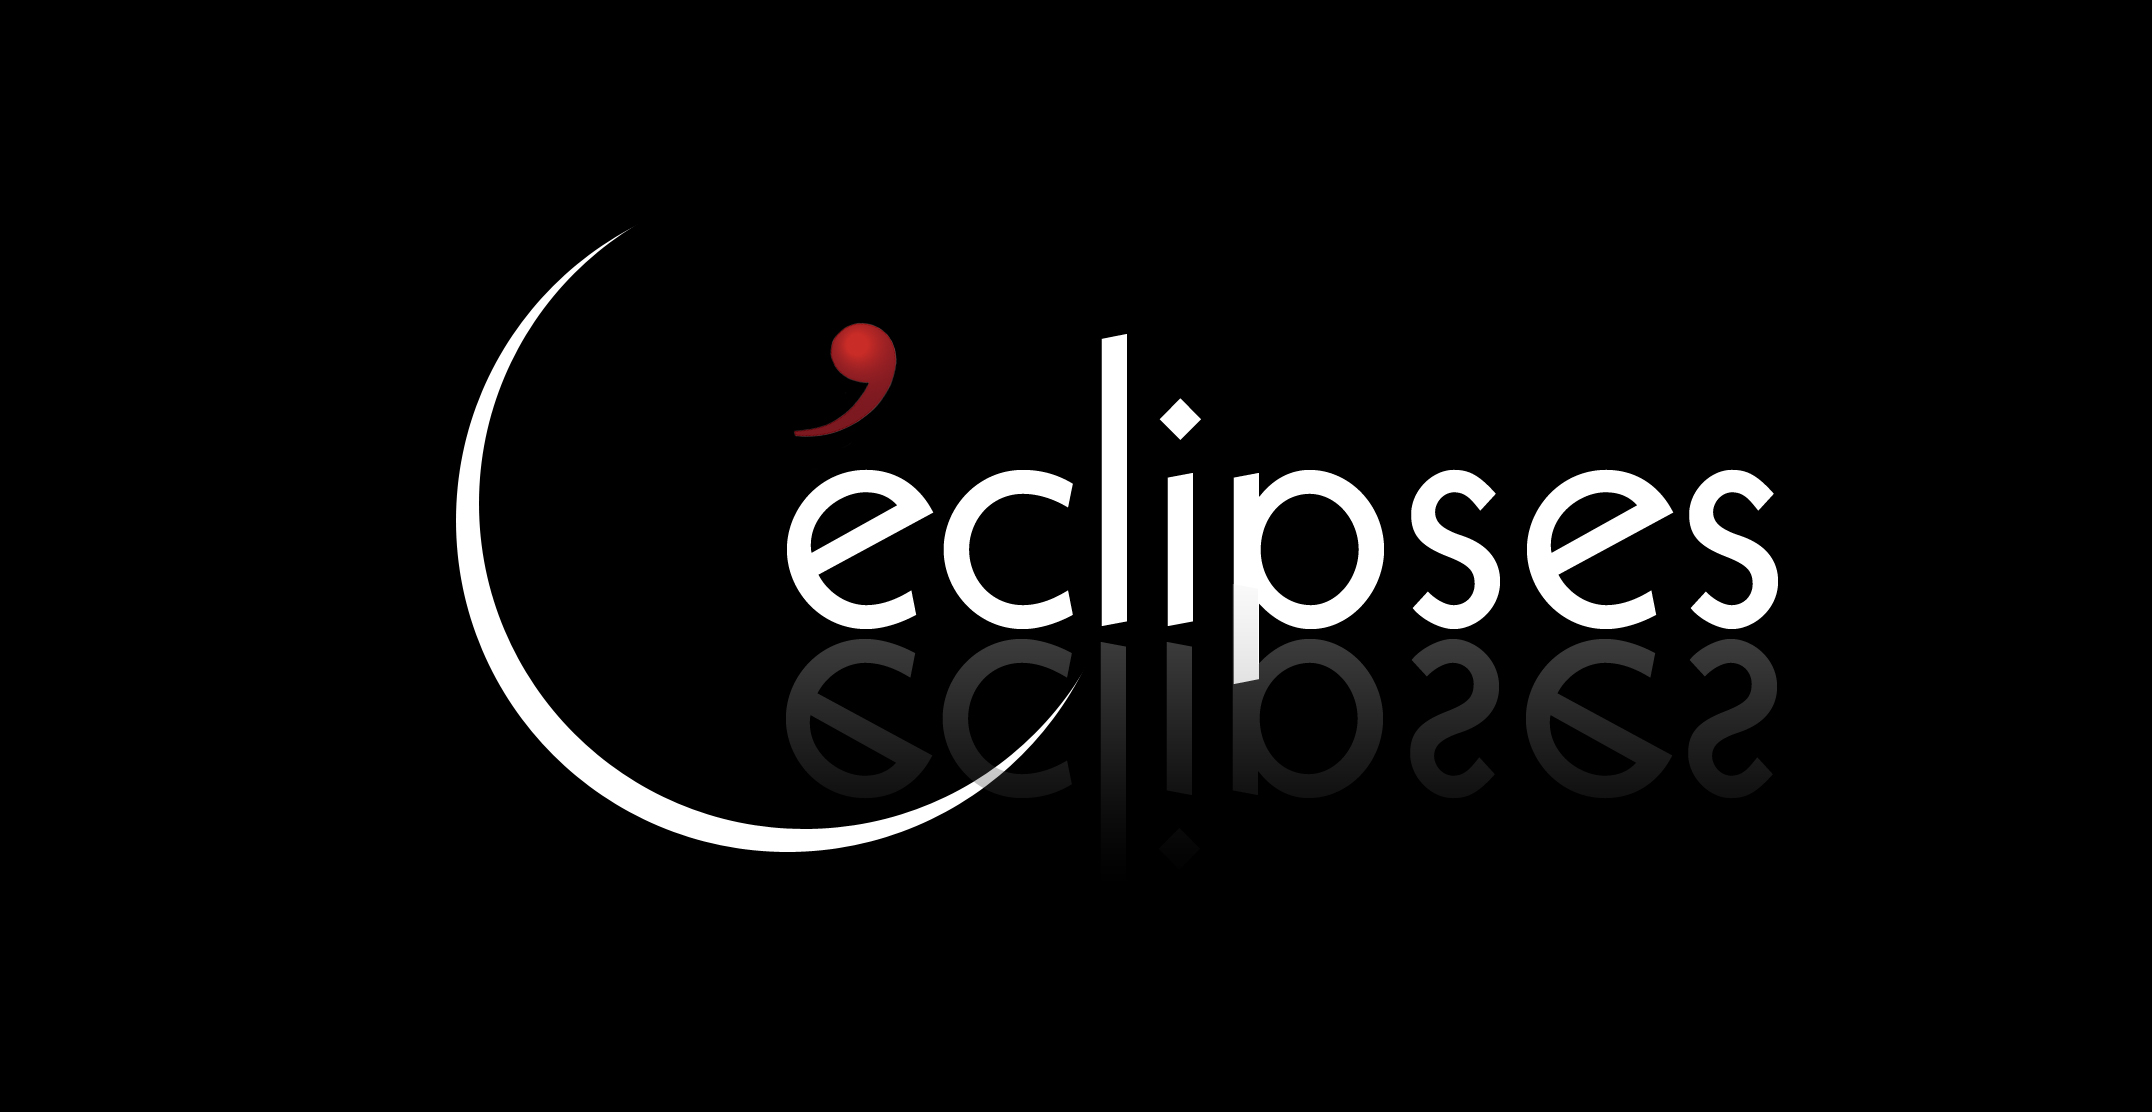 eclipses-noir copie2